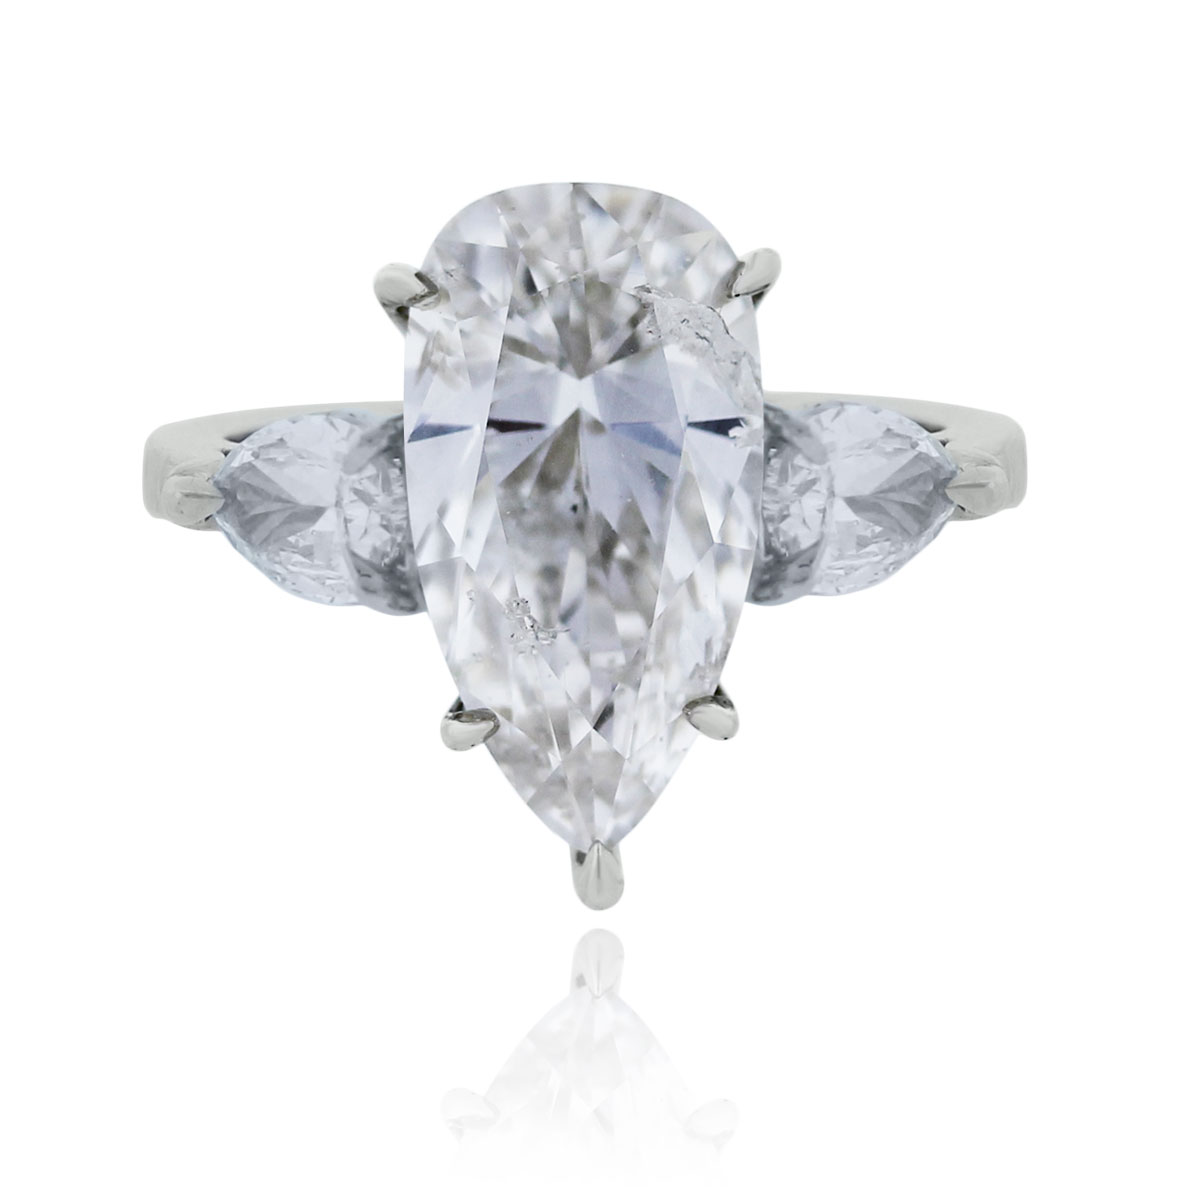 You are viewing this Platinum 5.01ct Pear Shape Diamond Engagement Ring!